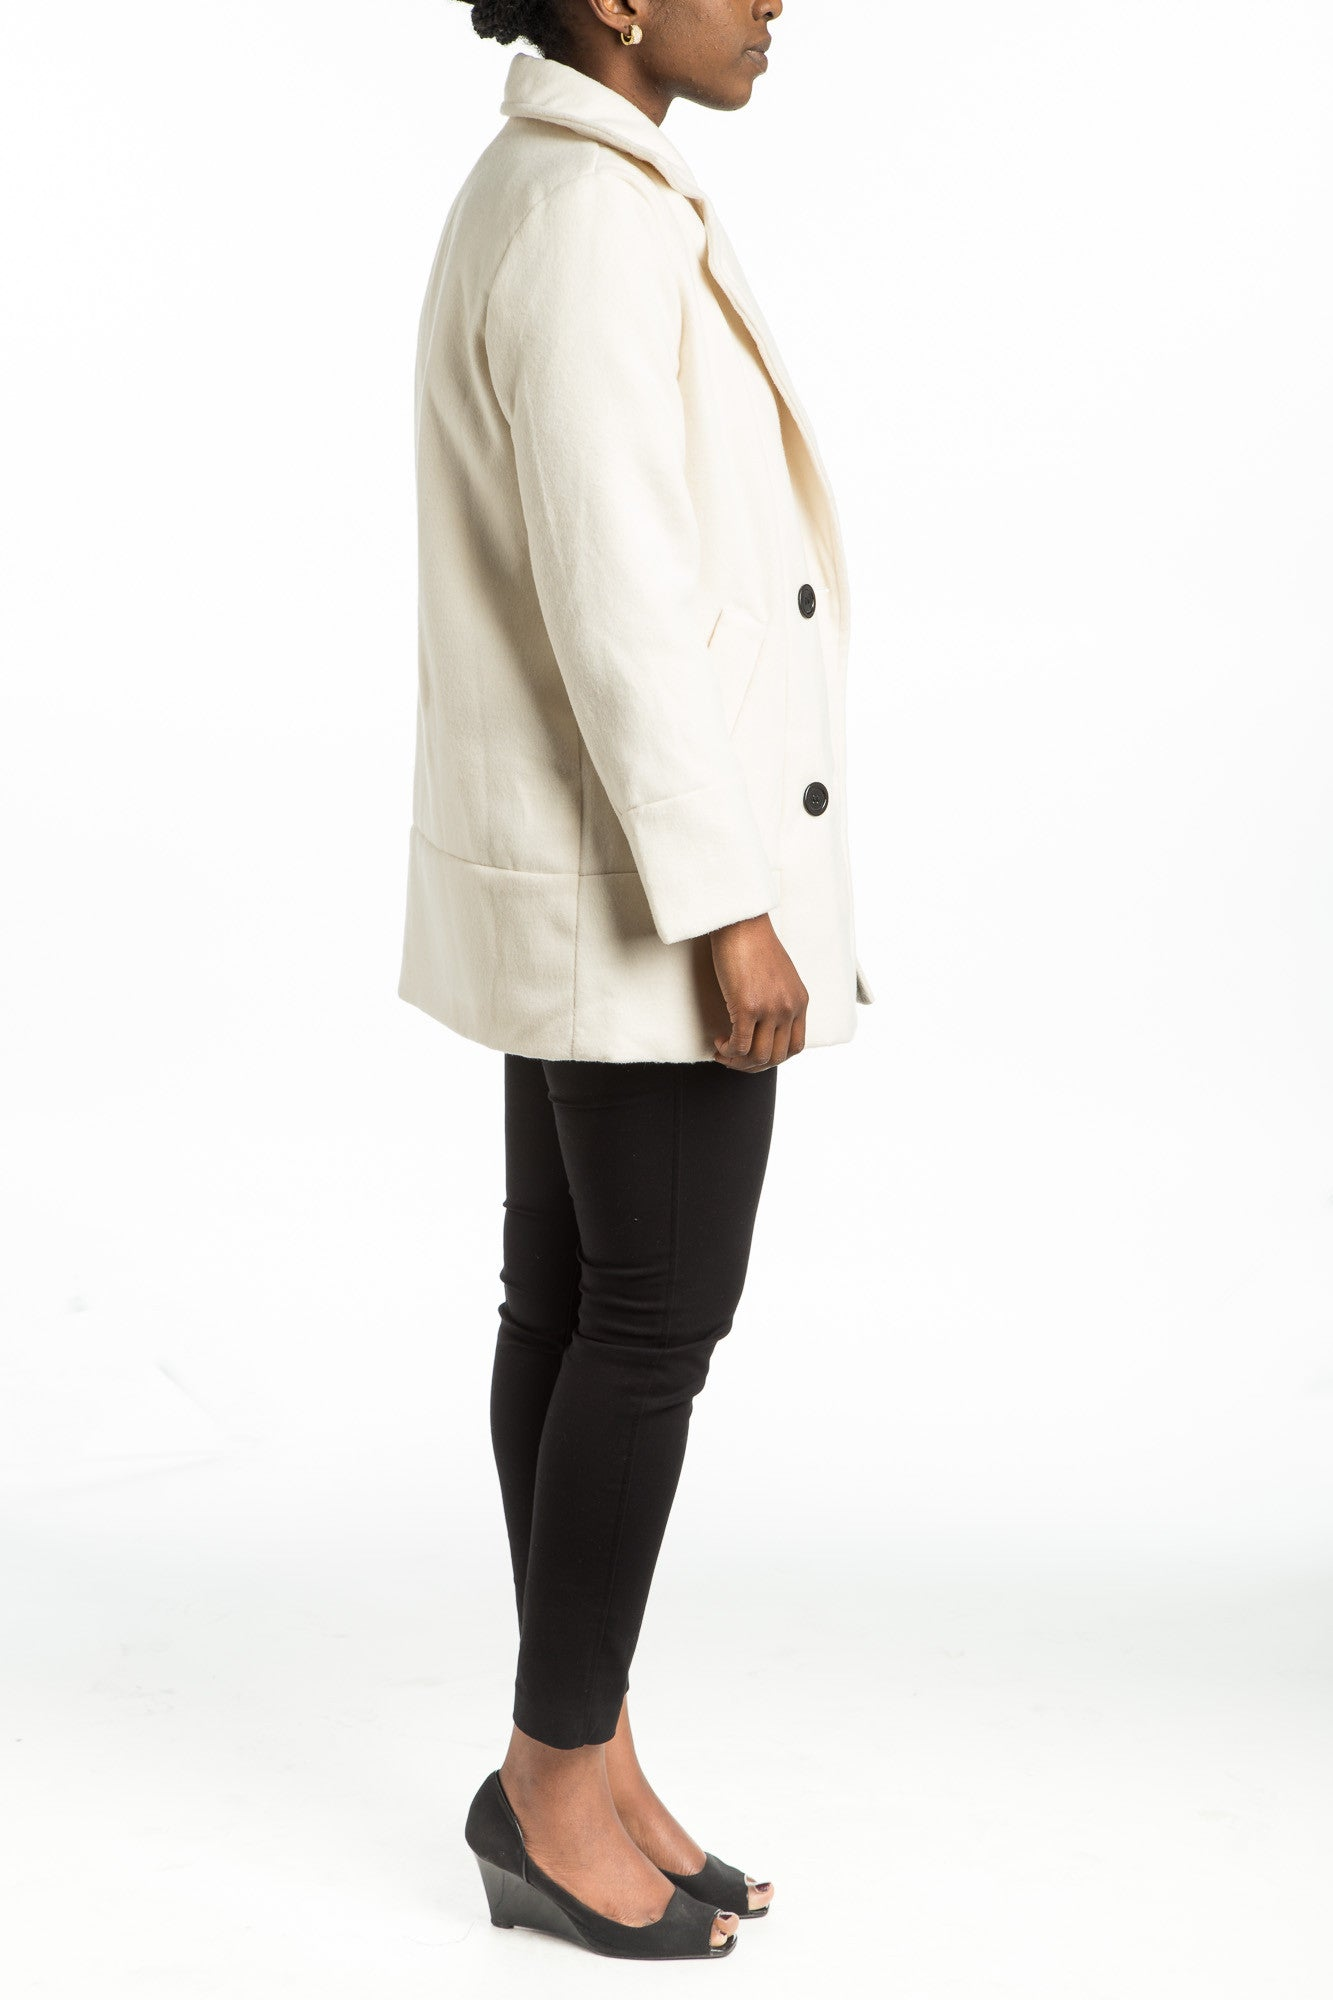 AXELLE Wool Coat - 2 colors available - Mademoiselle Veste - 3